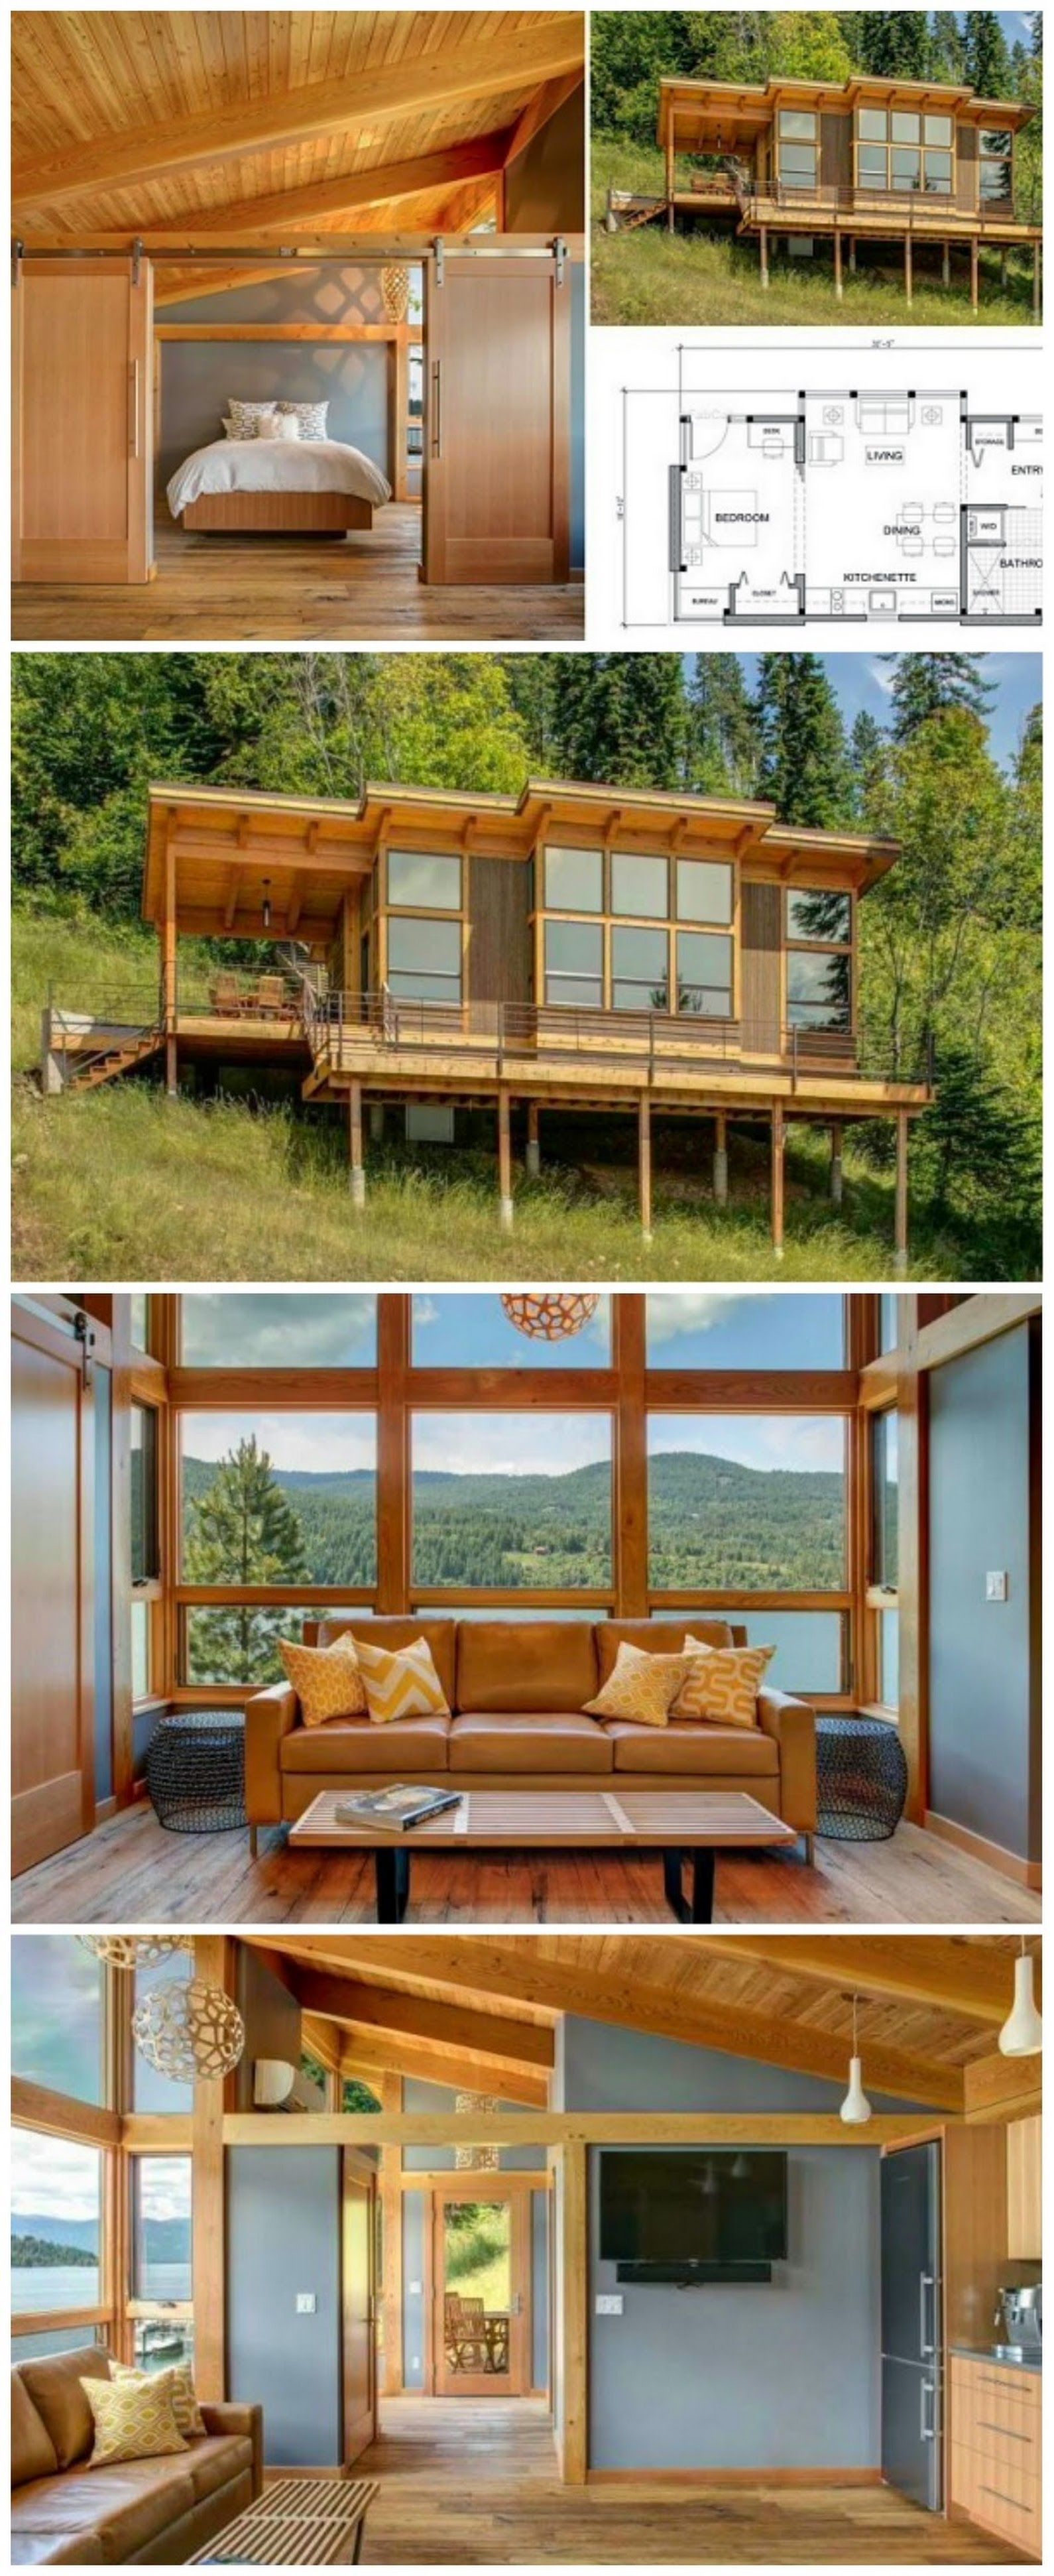 550 Sq Ft Prefab Timber Cabin Great Pin For Oahu Architectural Design Visit